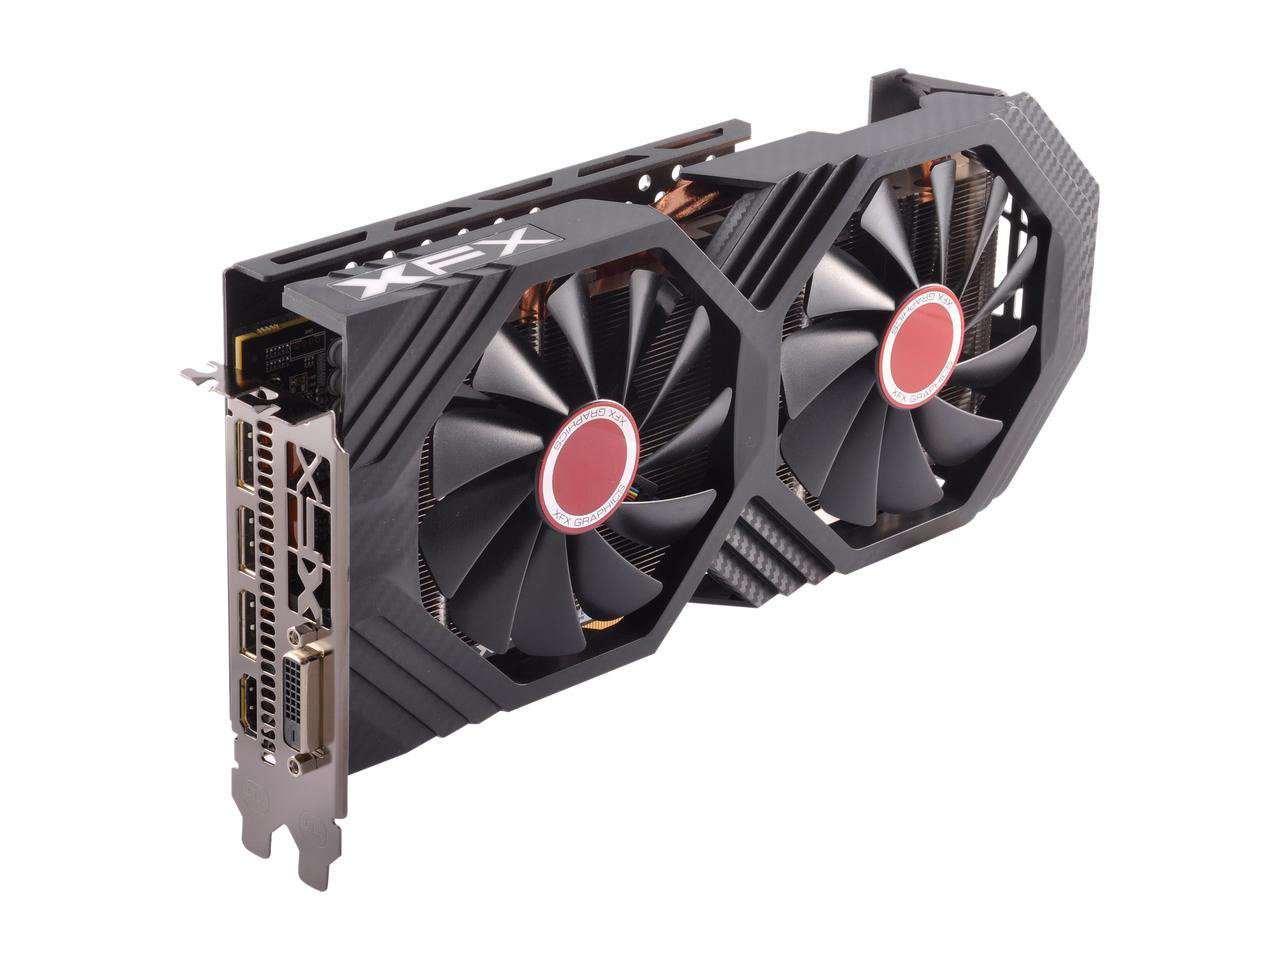 Best streaming option for rx 580